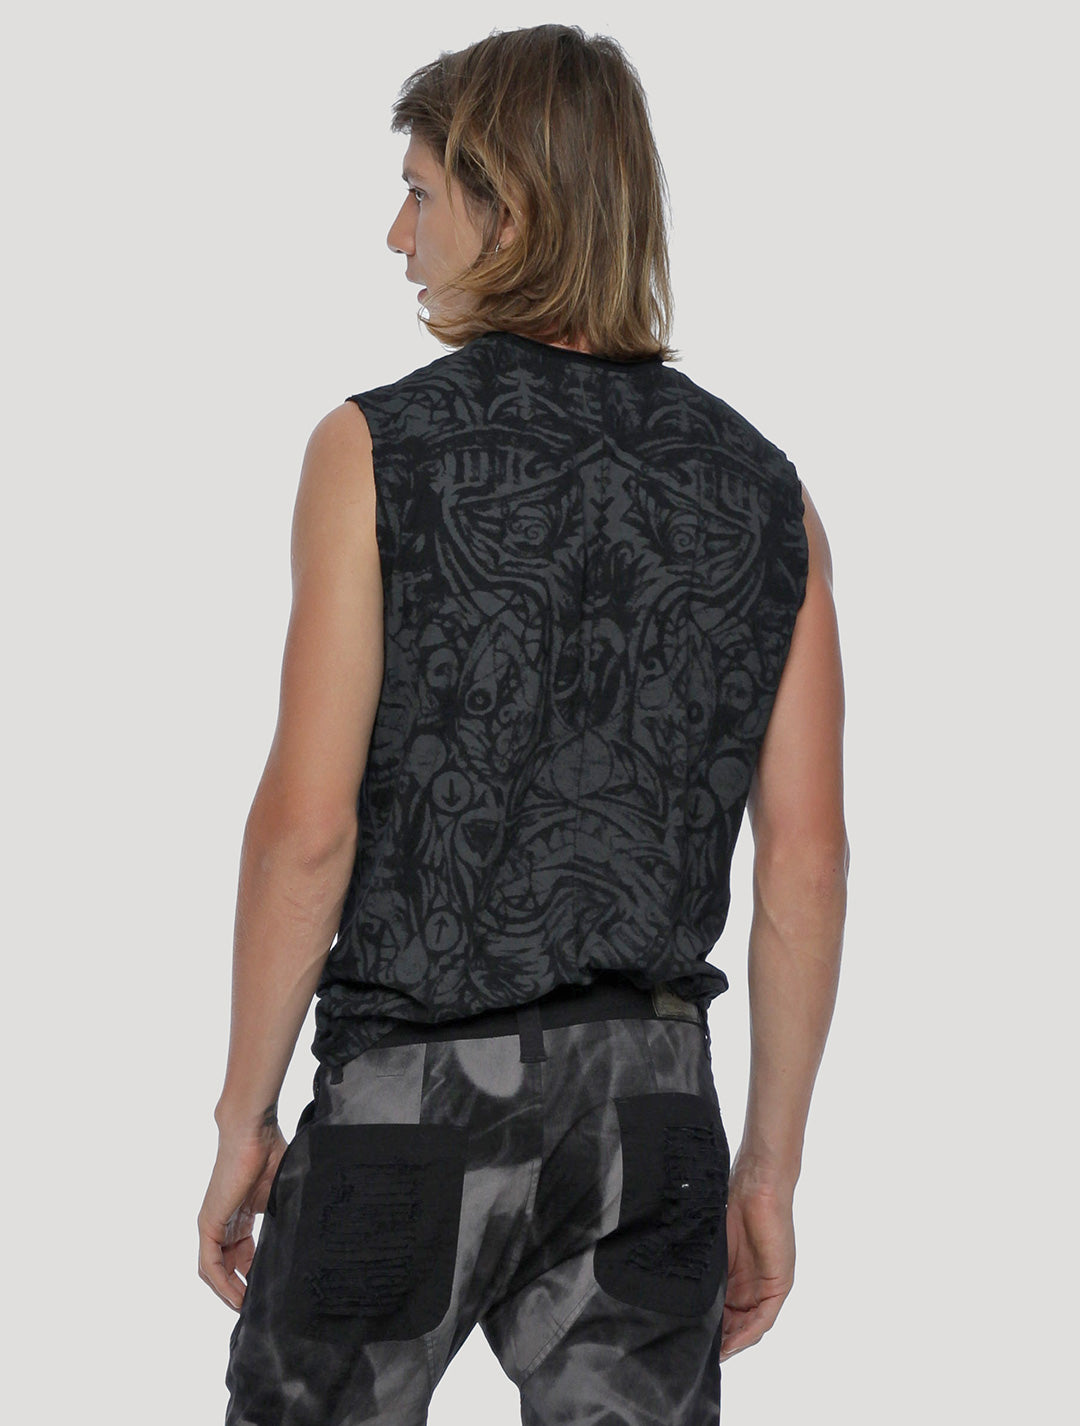 Warrior Sleeveless Tee - Psylo Fashion